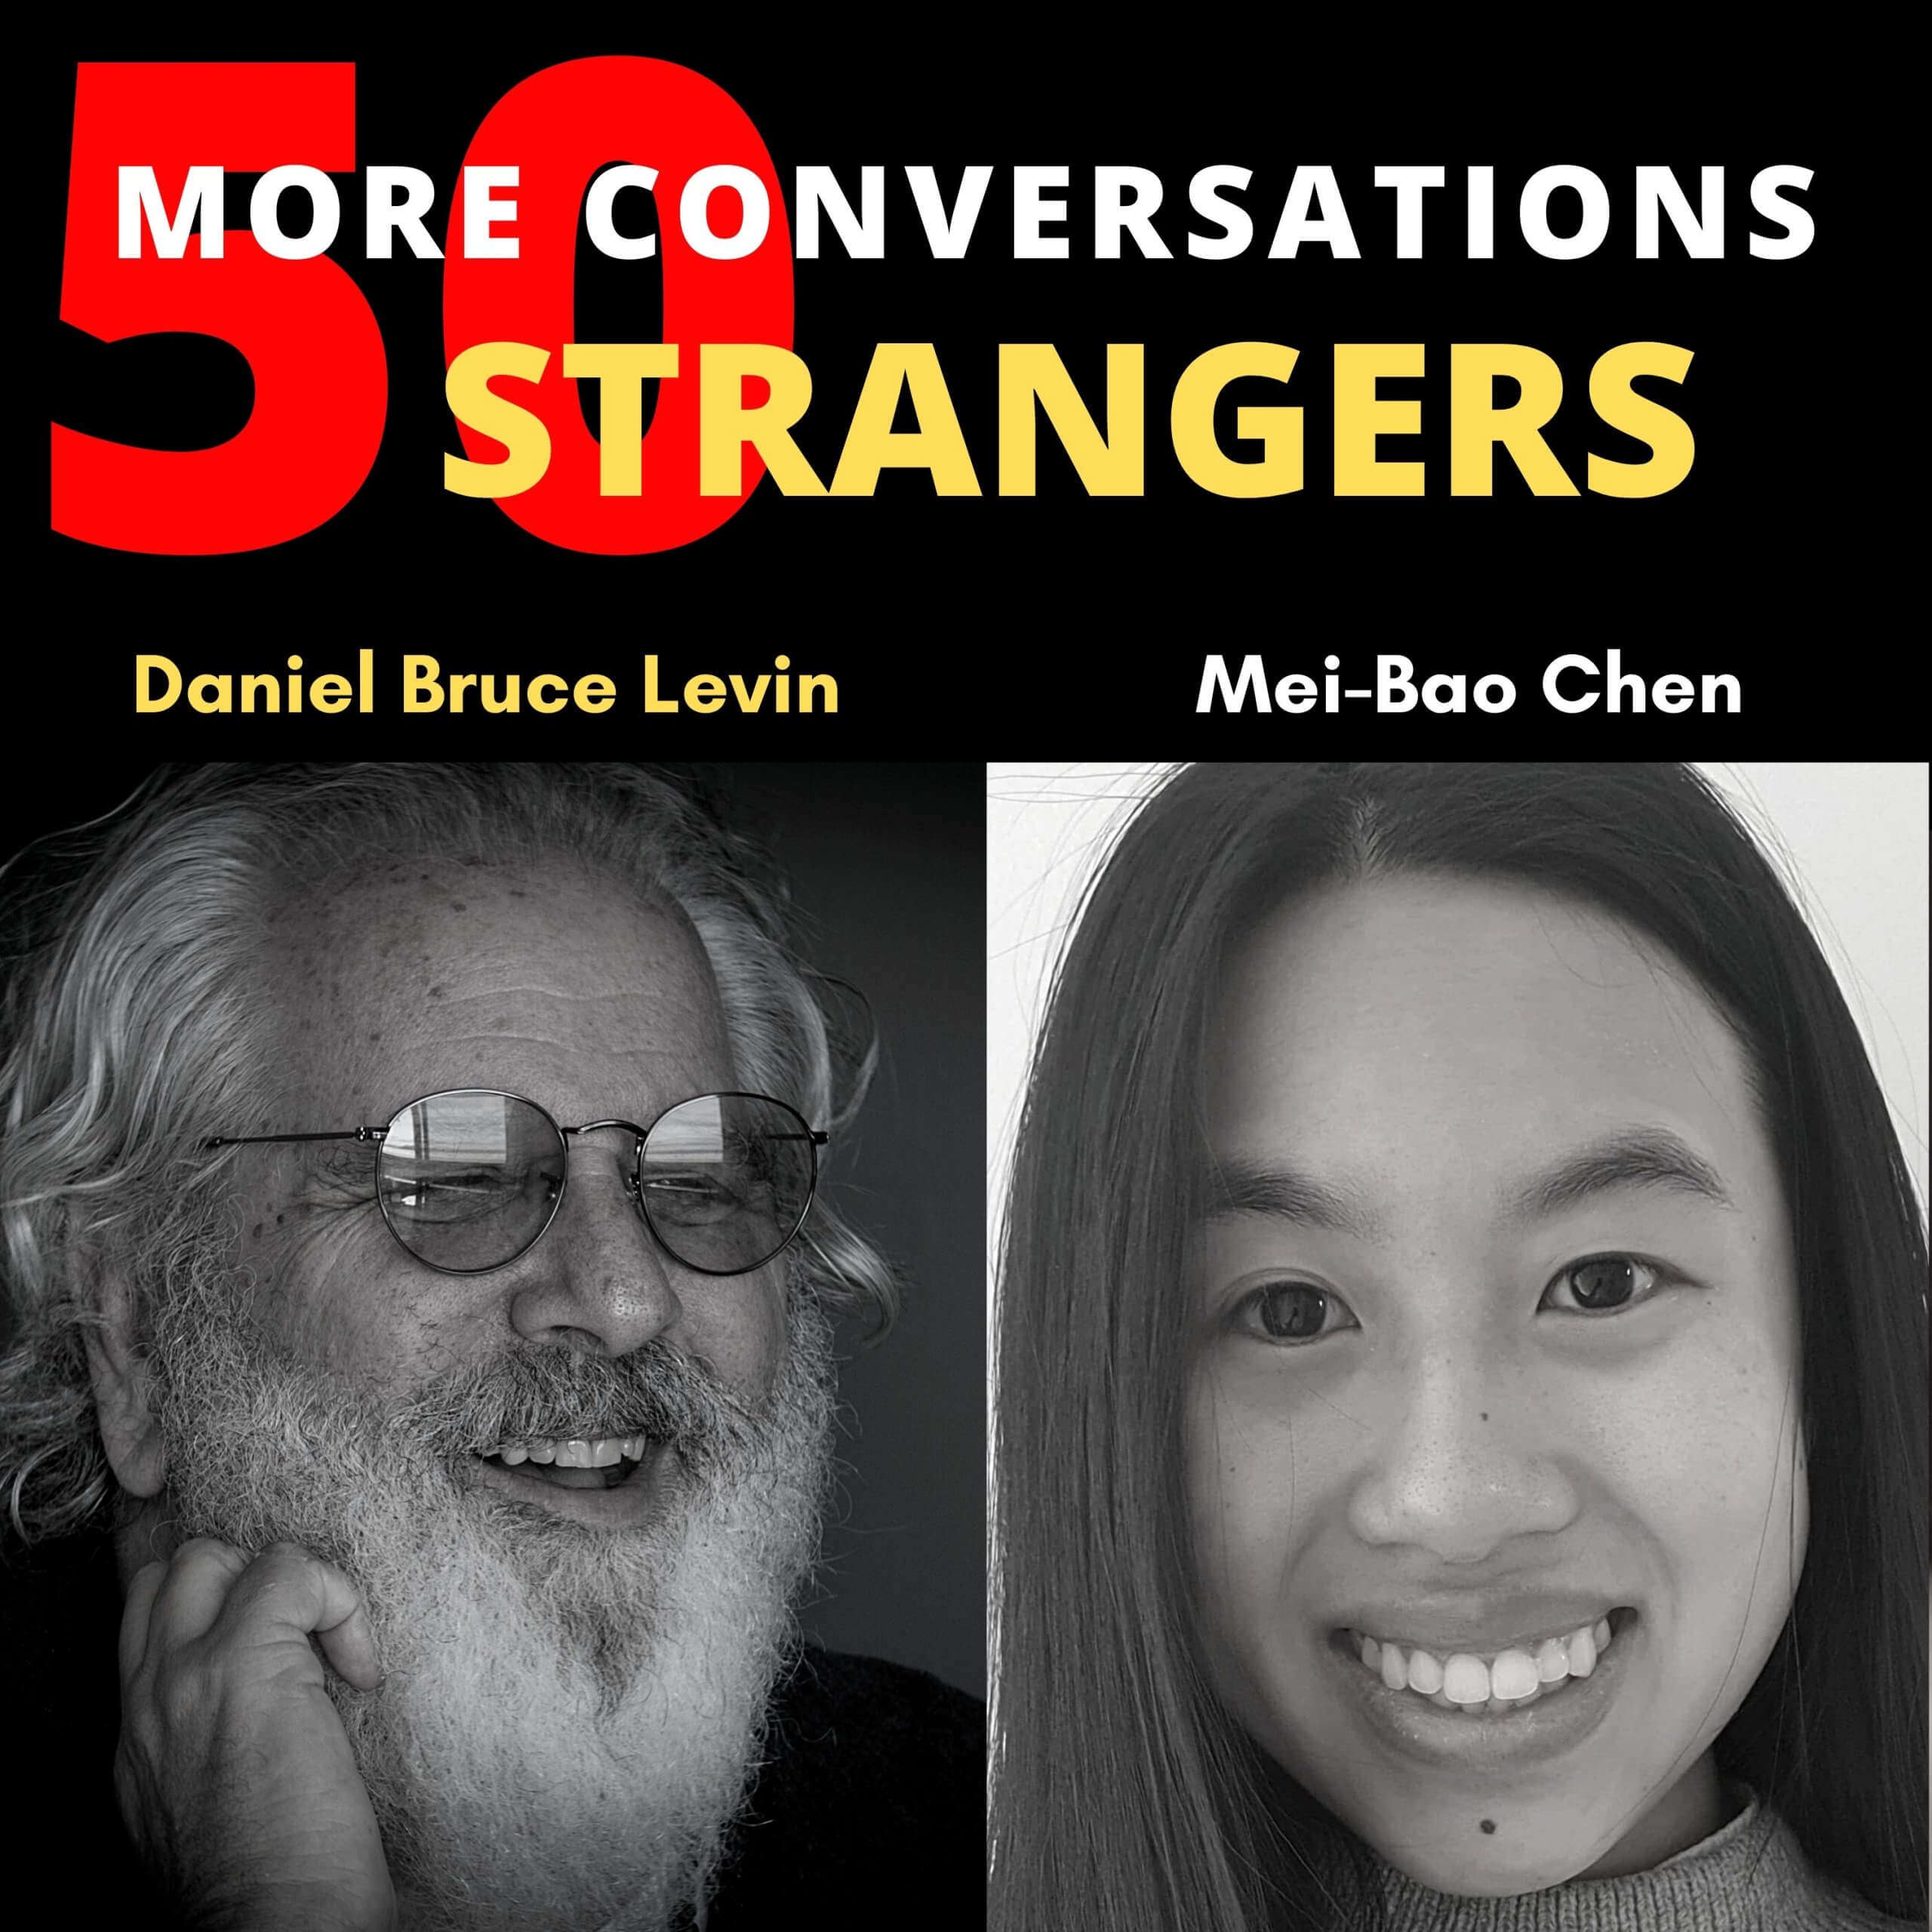 50 More Conversations with 50 More Strangers with Mei-Bao Chen